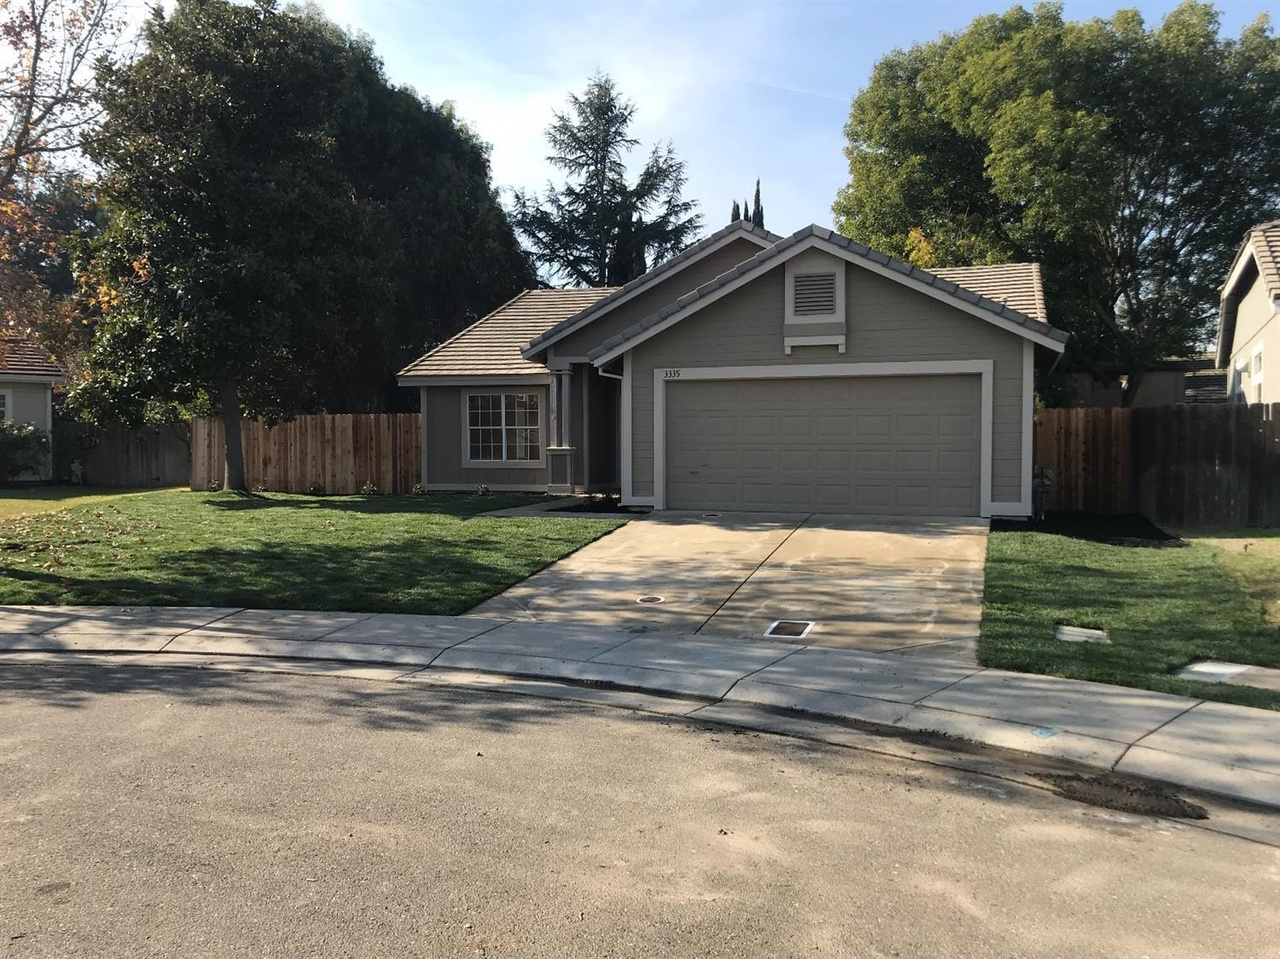 3335 Hat Ct Stockton Ca 95206 Mls 17075127 Redfin